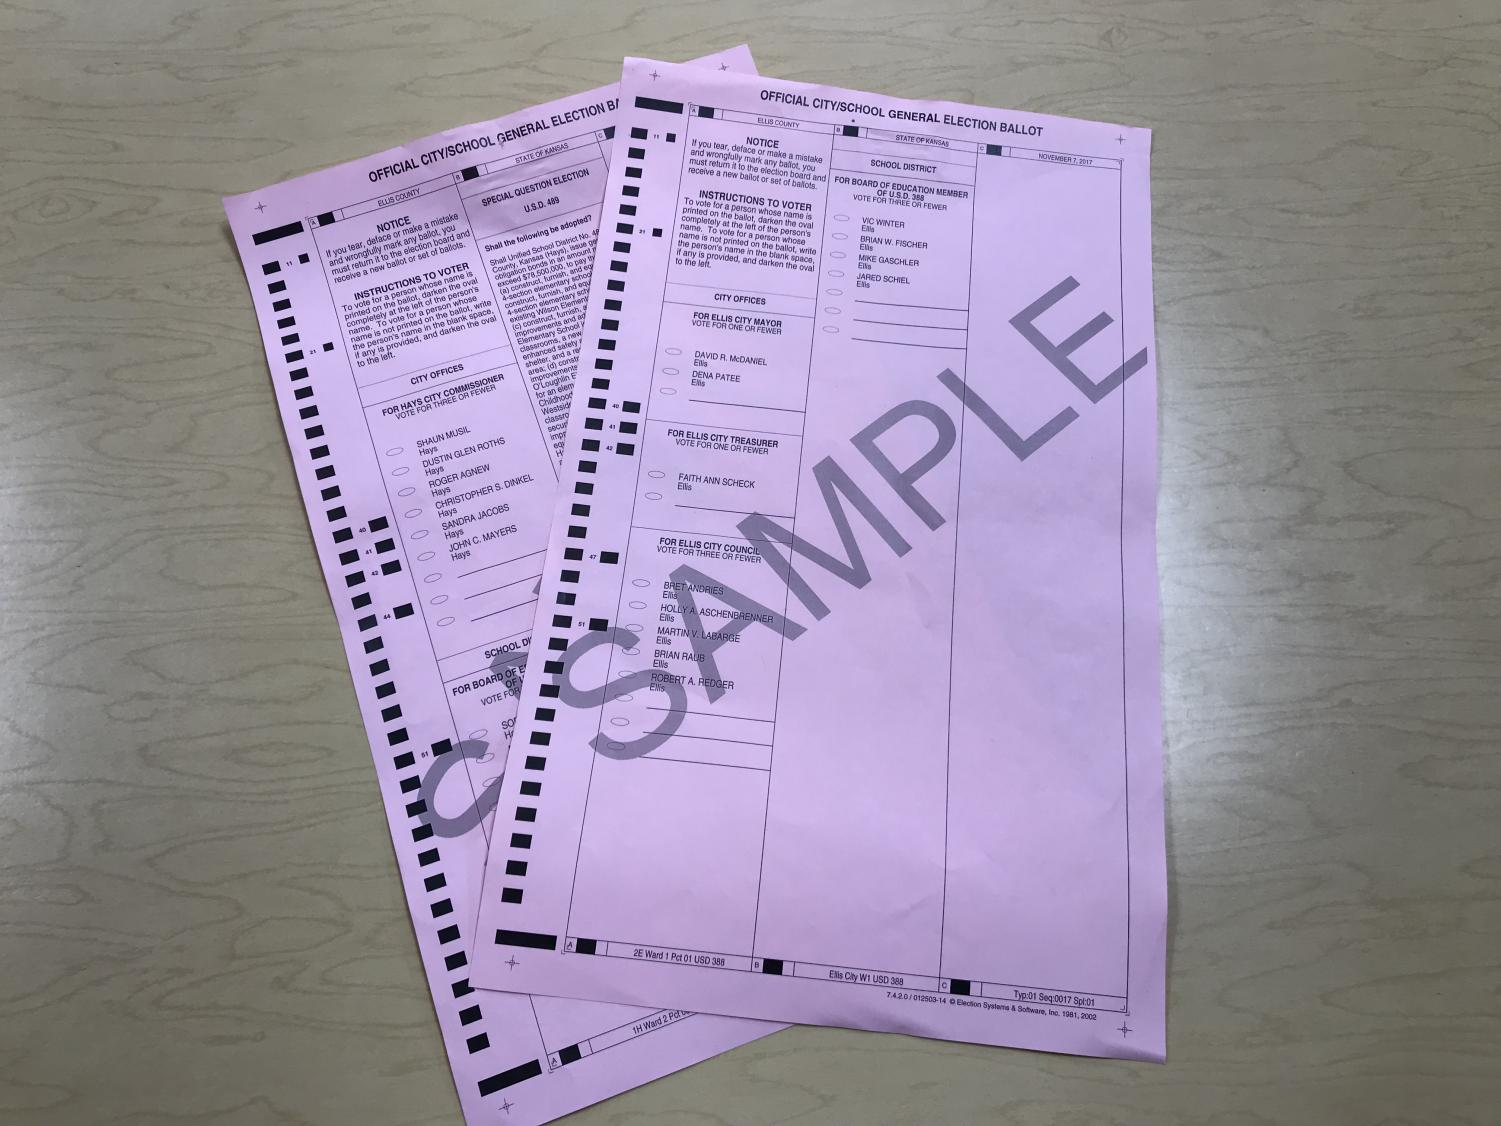 Fenwick used sample ballots as demonstrations for her students.